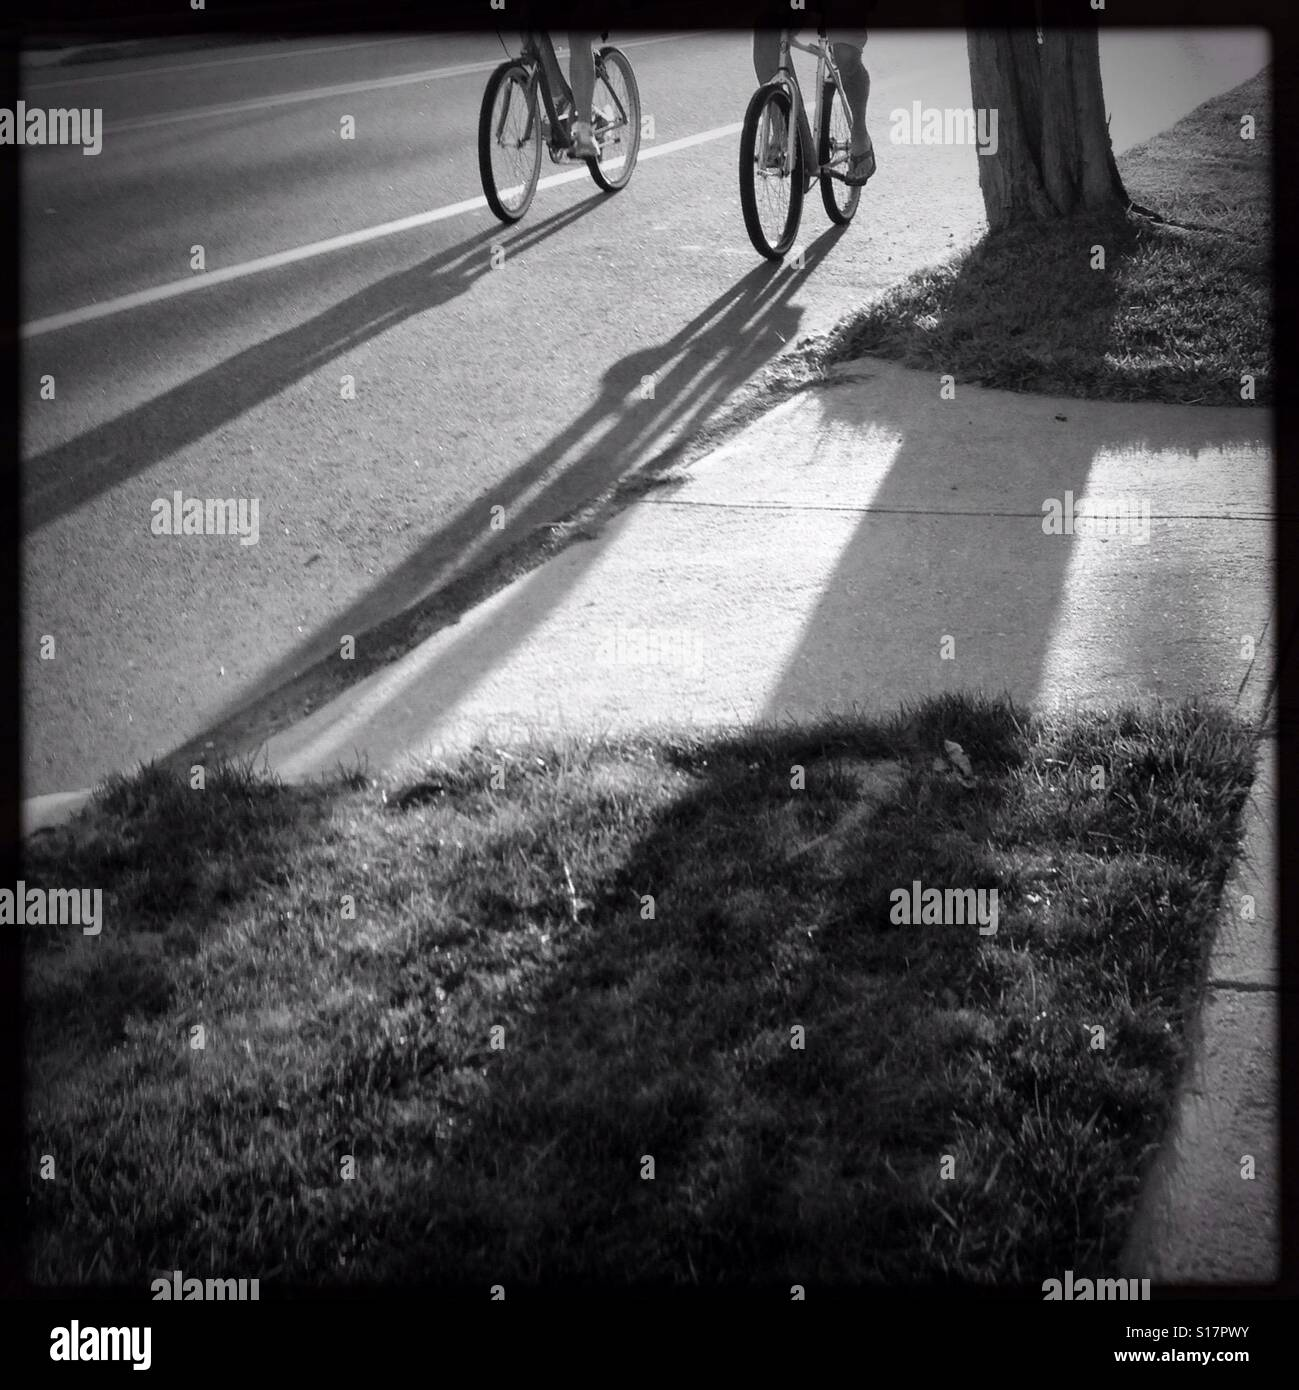 Shadows of two bicyclists on a street with shadows from the sun cast on the pavement of the street - Stock Image